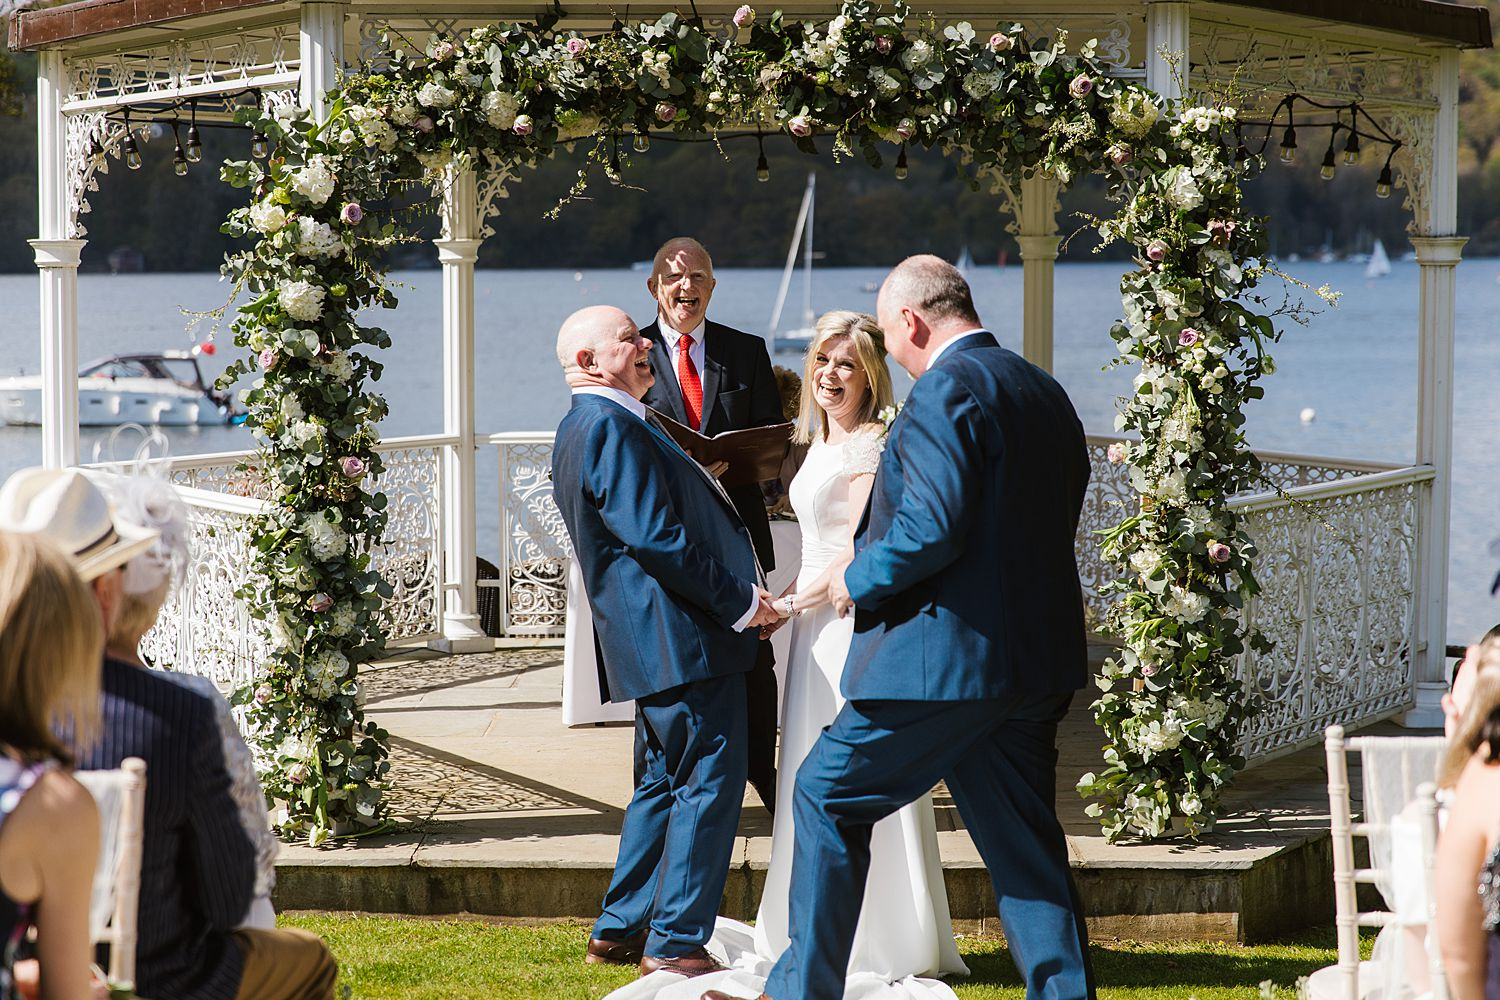 Best man, bride and groom share a joke in outdoor ceremony at Storrs Hall hotel wedding venue, overlooking Lake Windermere